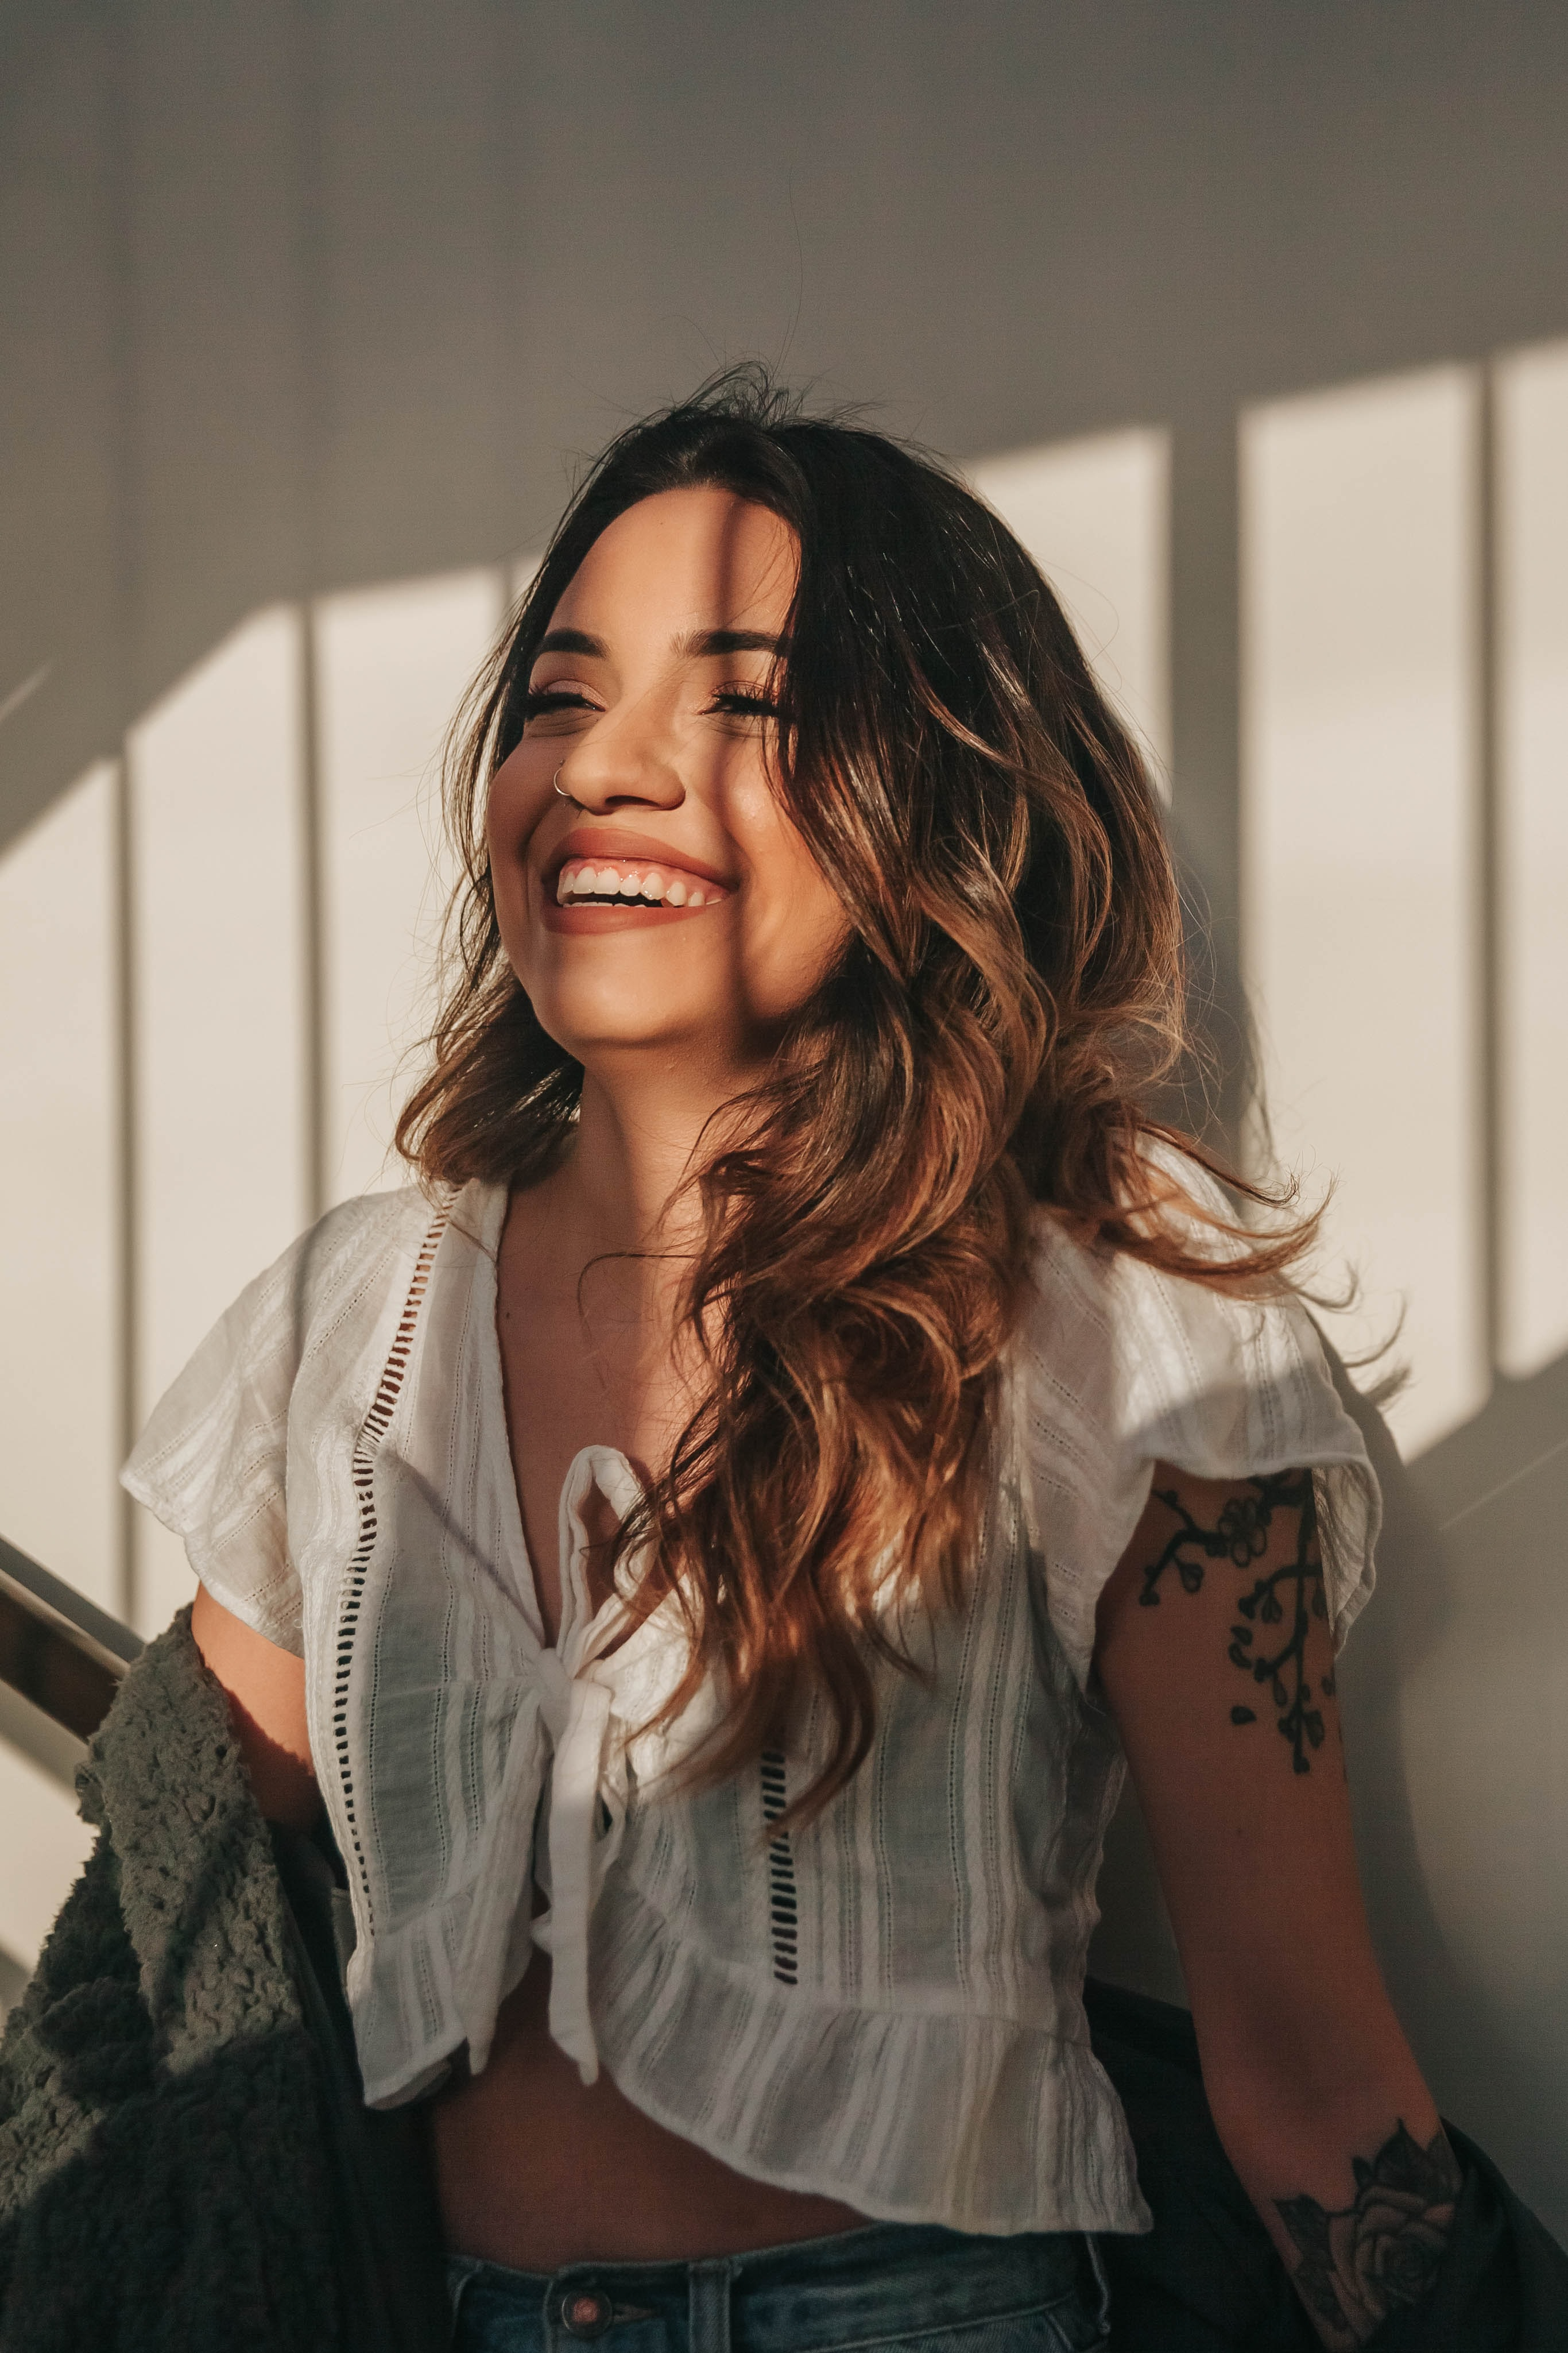 woman in white top smiling while leaning on white wall